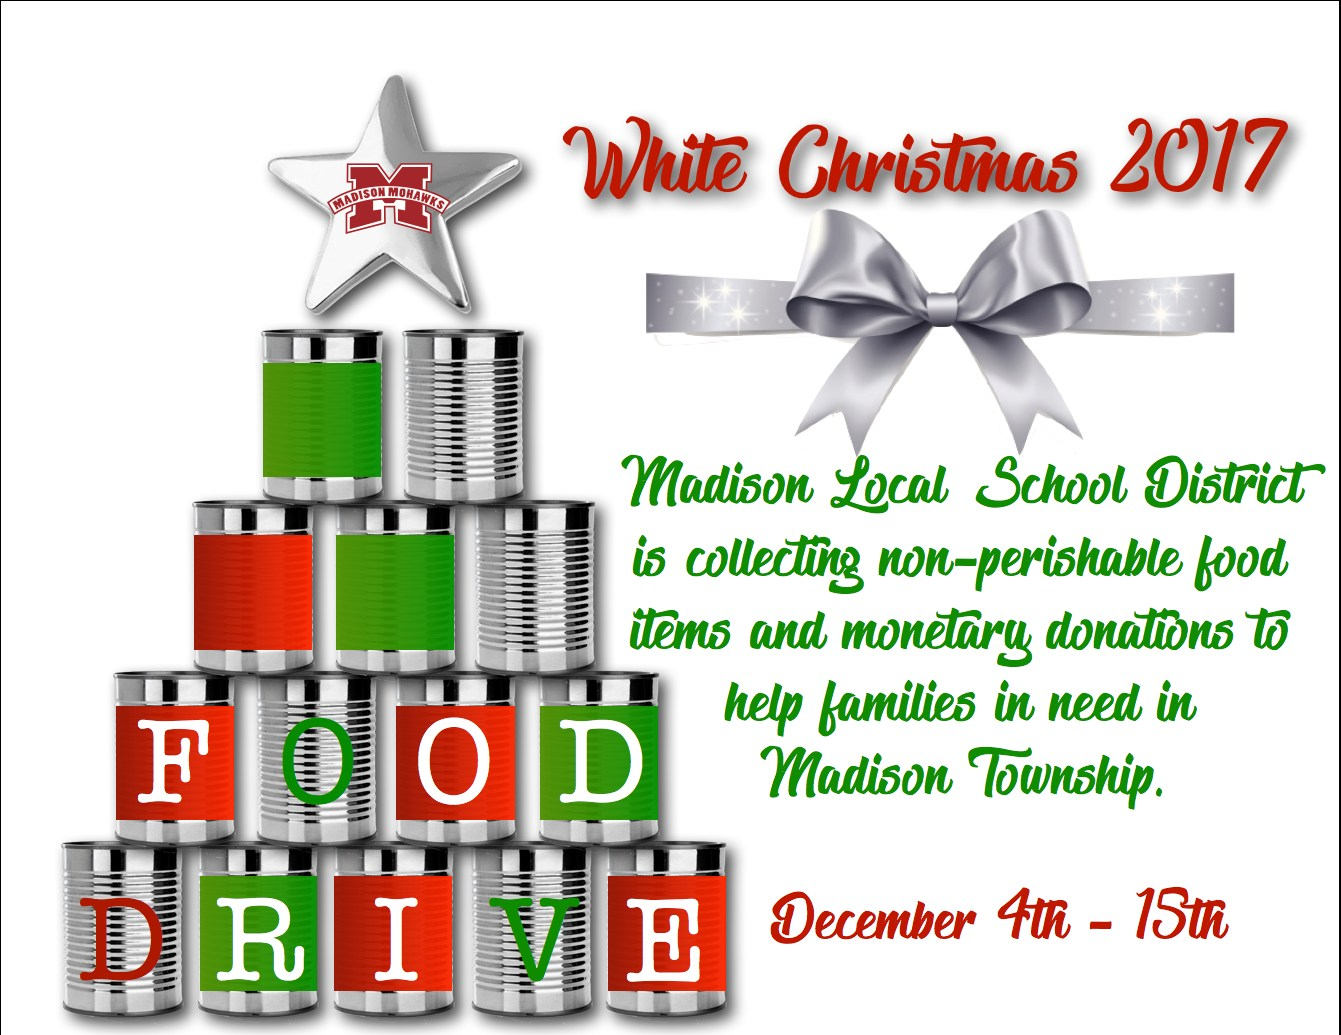 White Christmas canned food drive